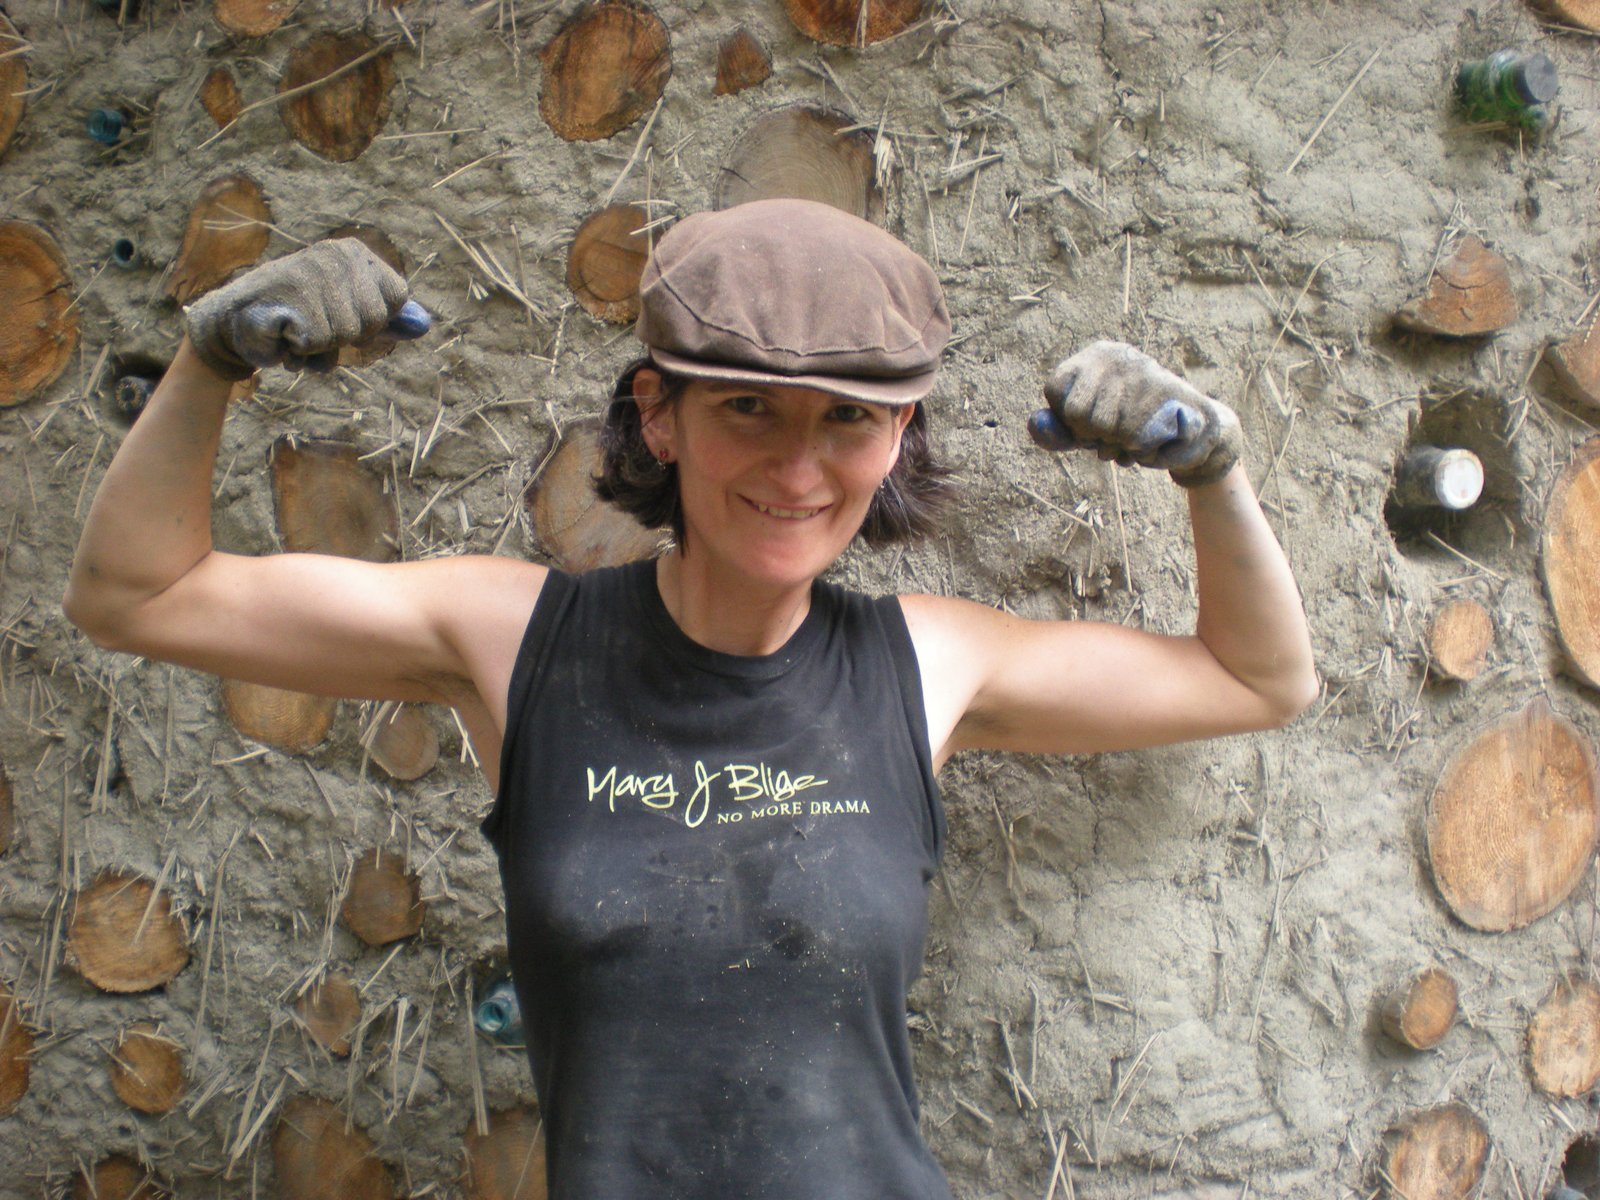 Mud Girl Clare shows off her muscles!  Photo 5 of 5 in Mud Mavens: Mud Girls Founder Jen Gobby